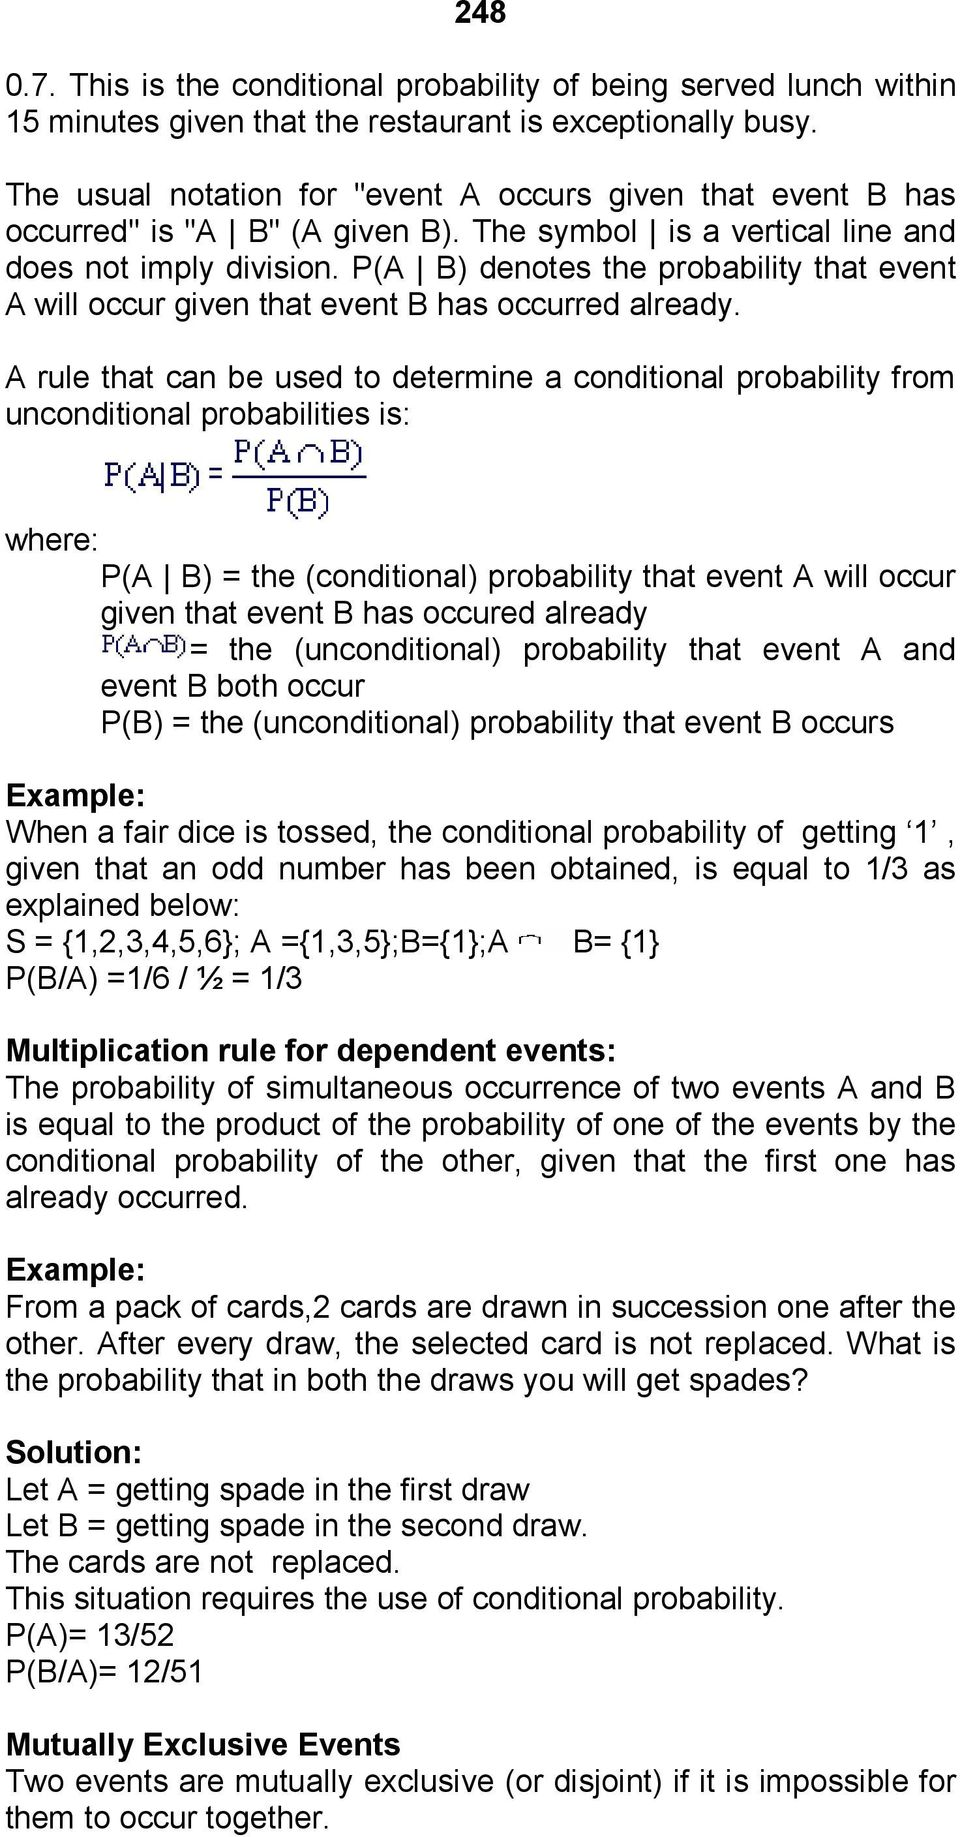 P(A B) denotes the probability that event A will occur given that event B has occurred already.